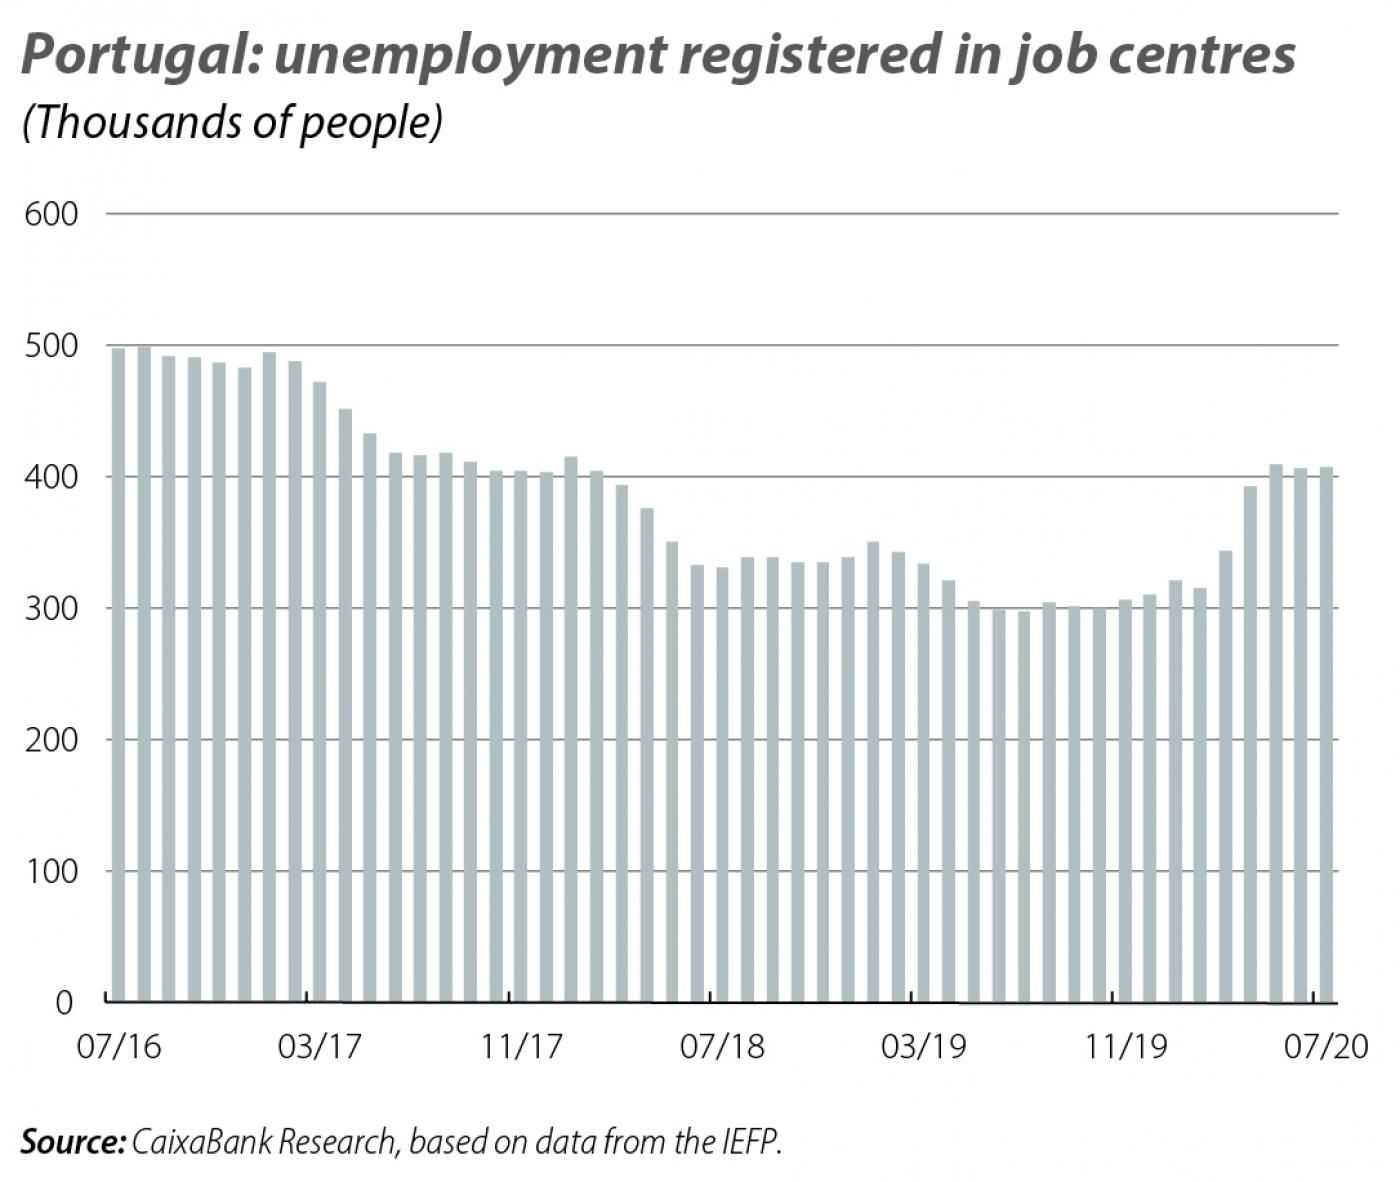 Portugal: unemployment registered in job centres